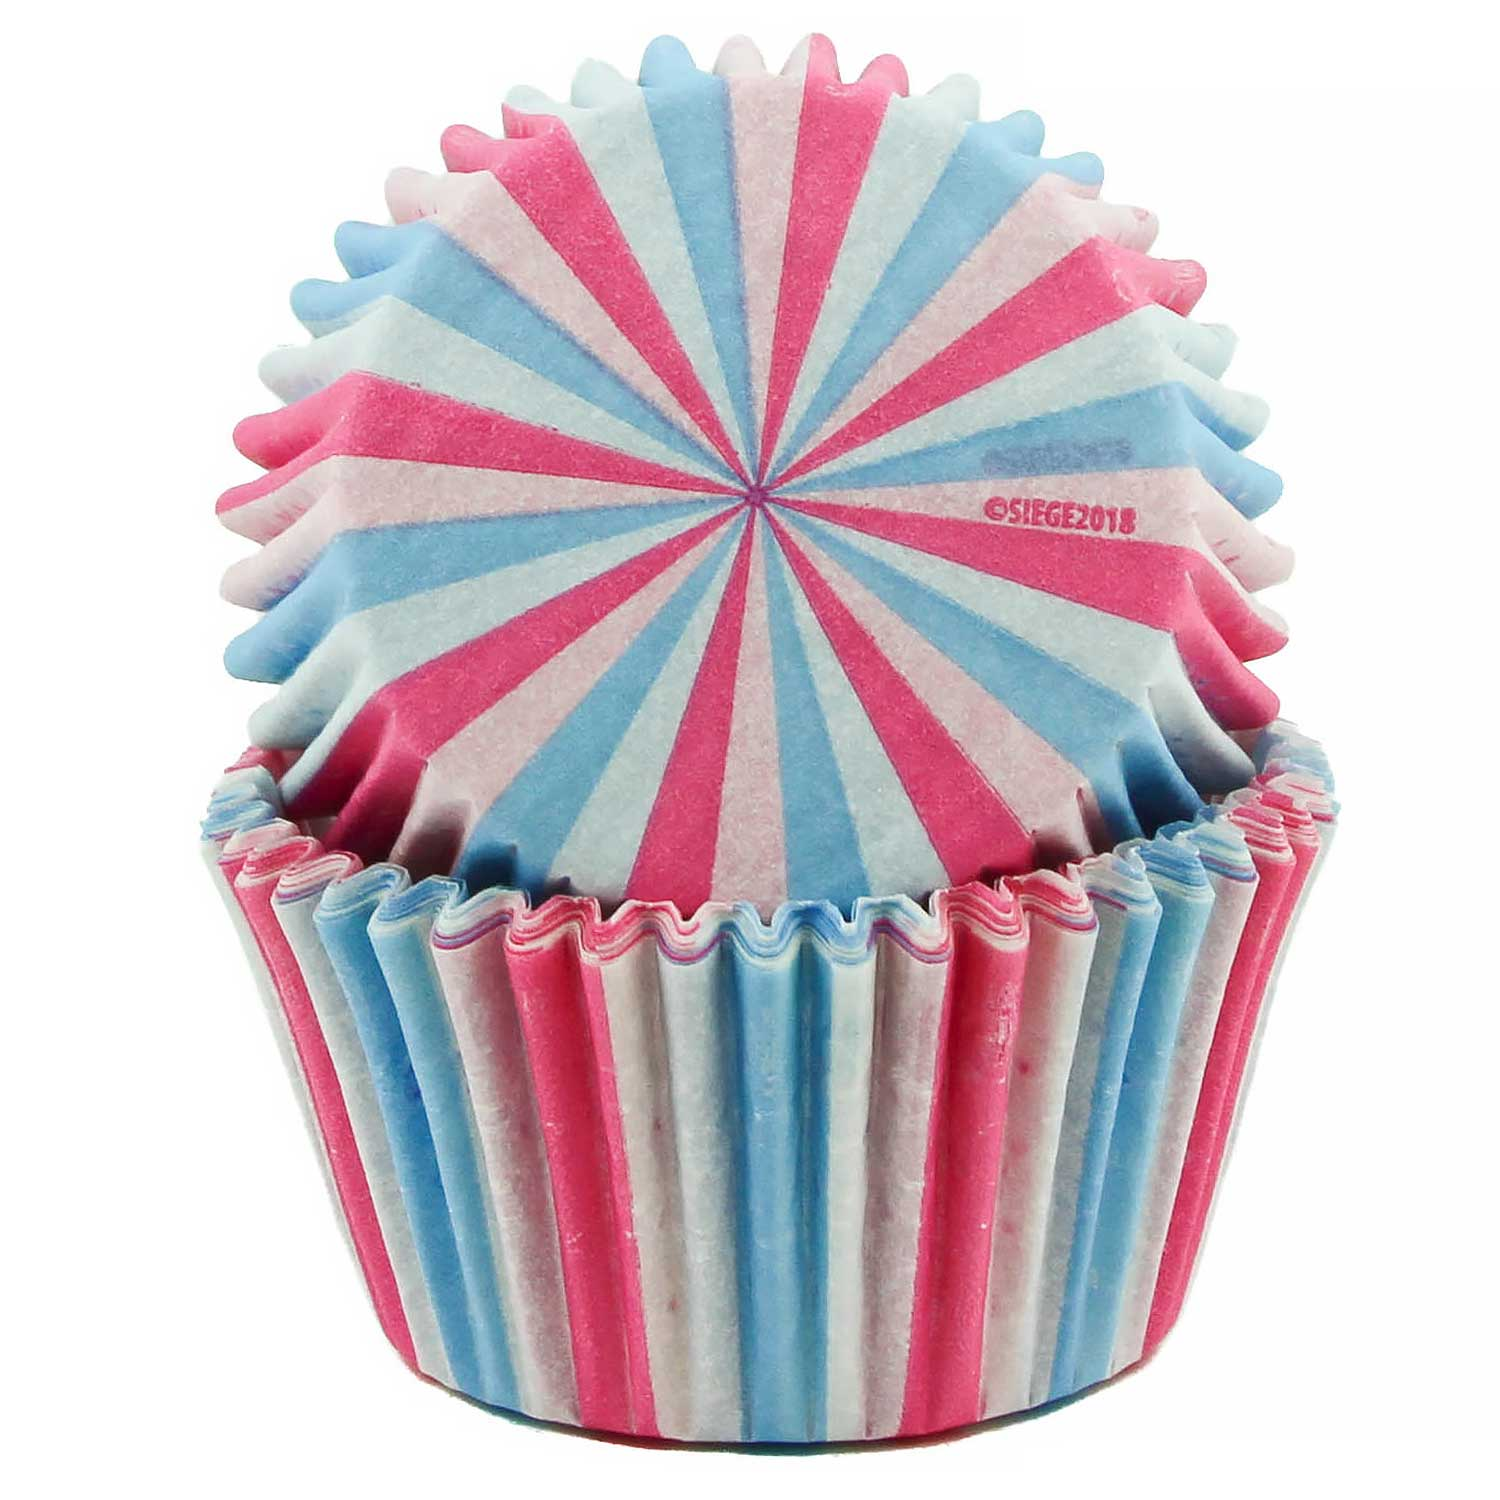 Reveal Stripes Standard Baking Cups